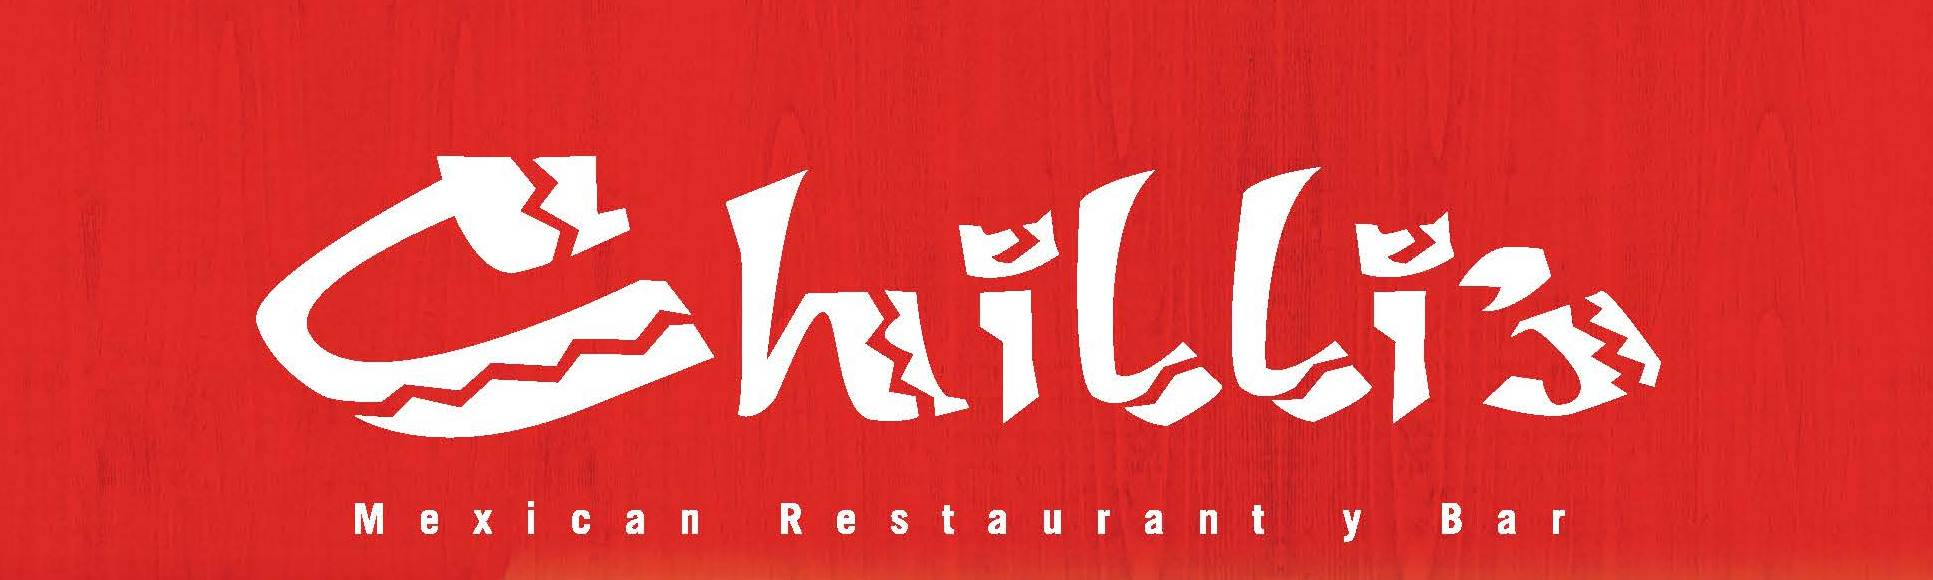 Chillis Mexican Restaurant y Bar